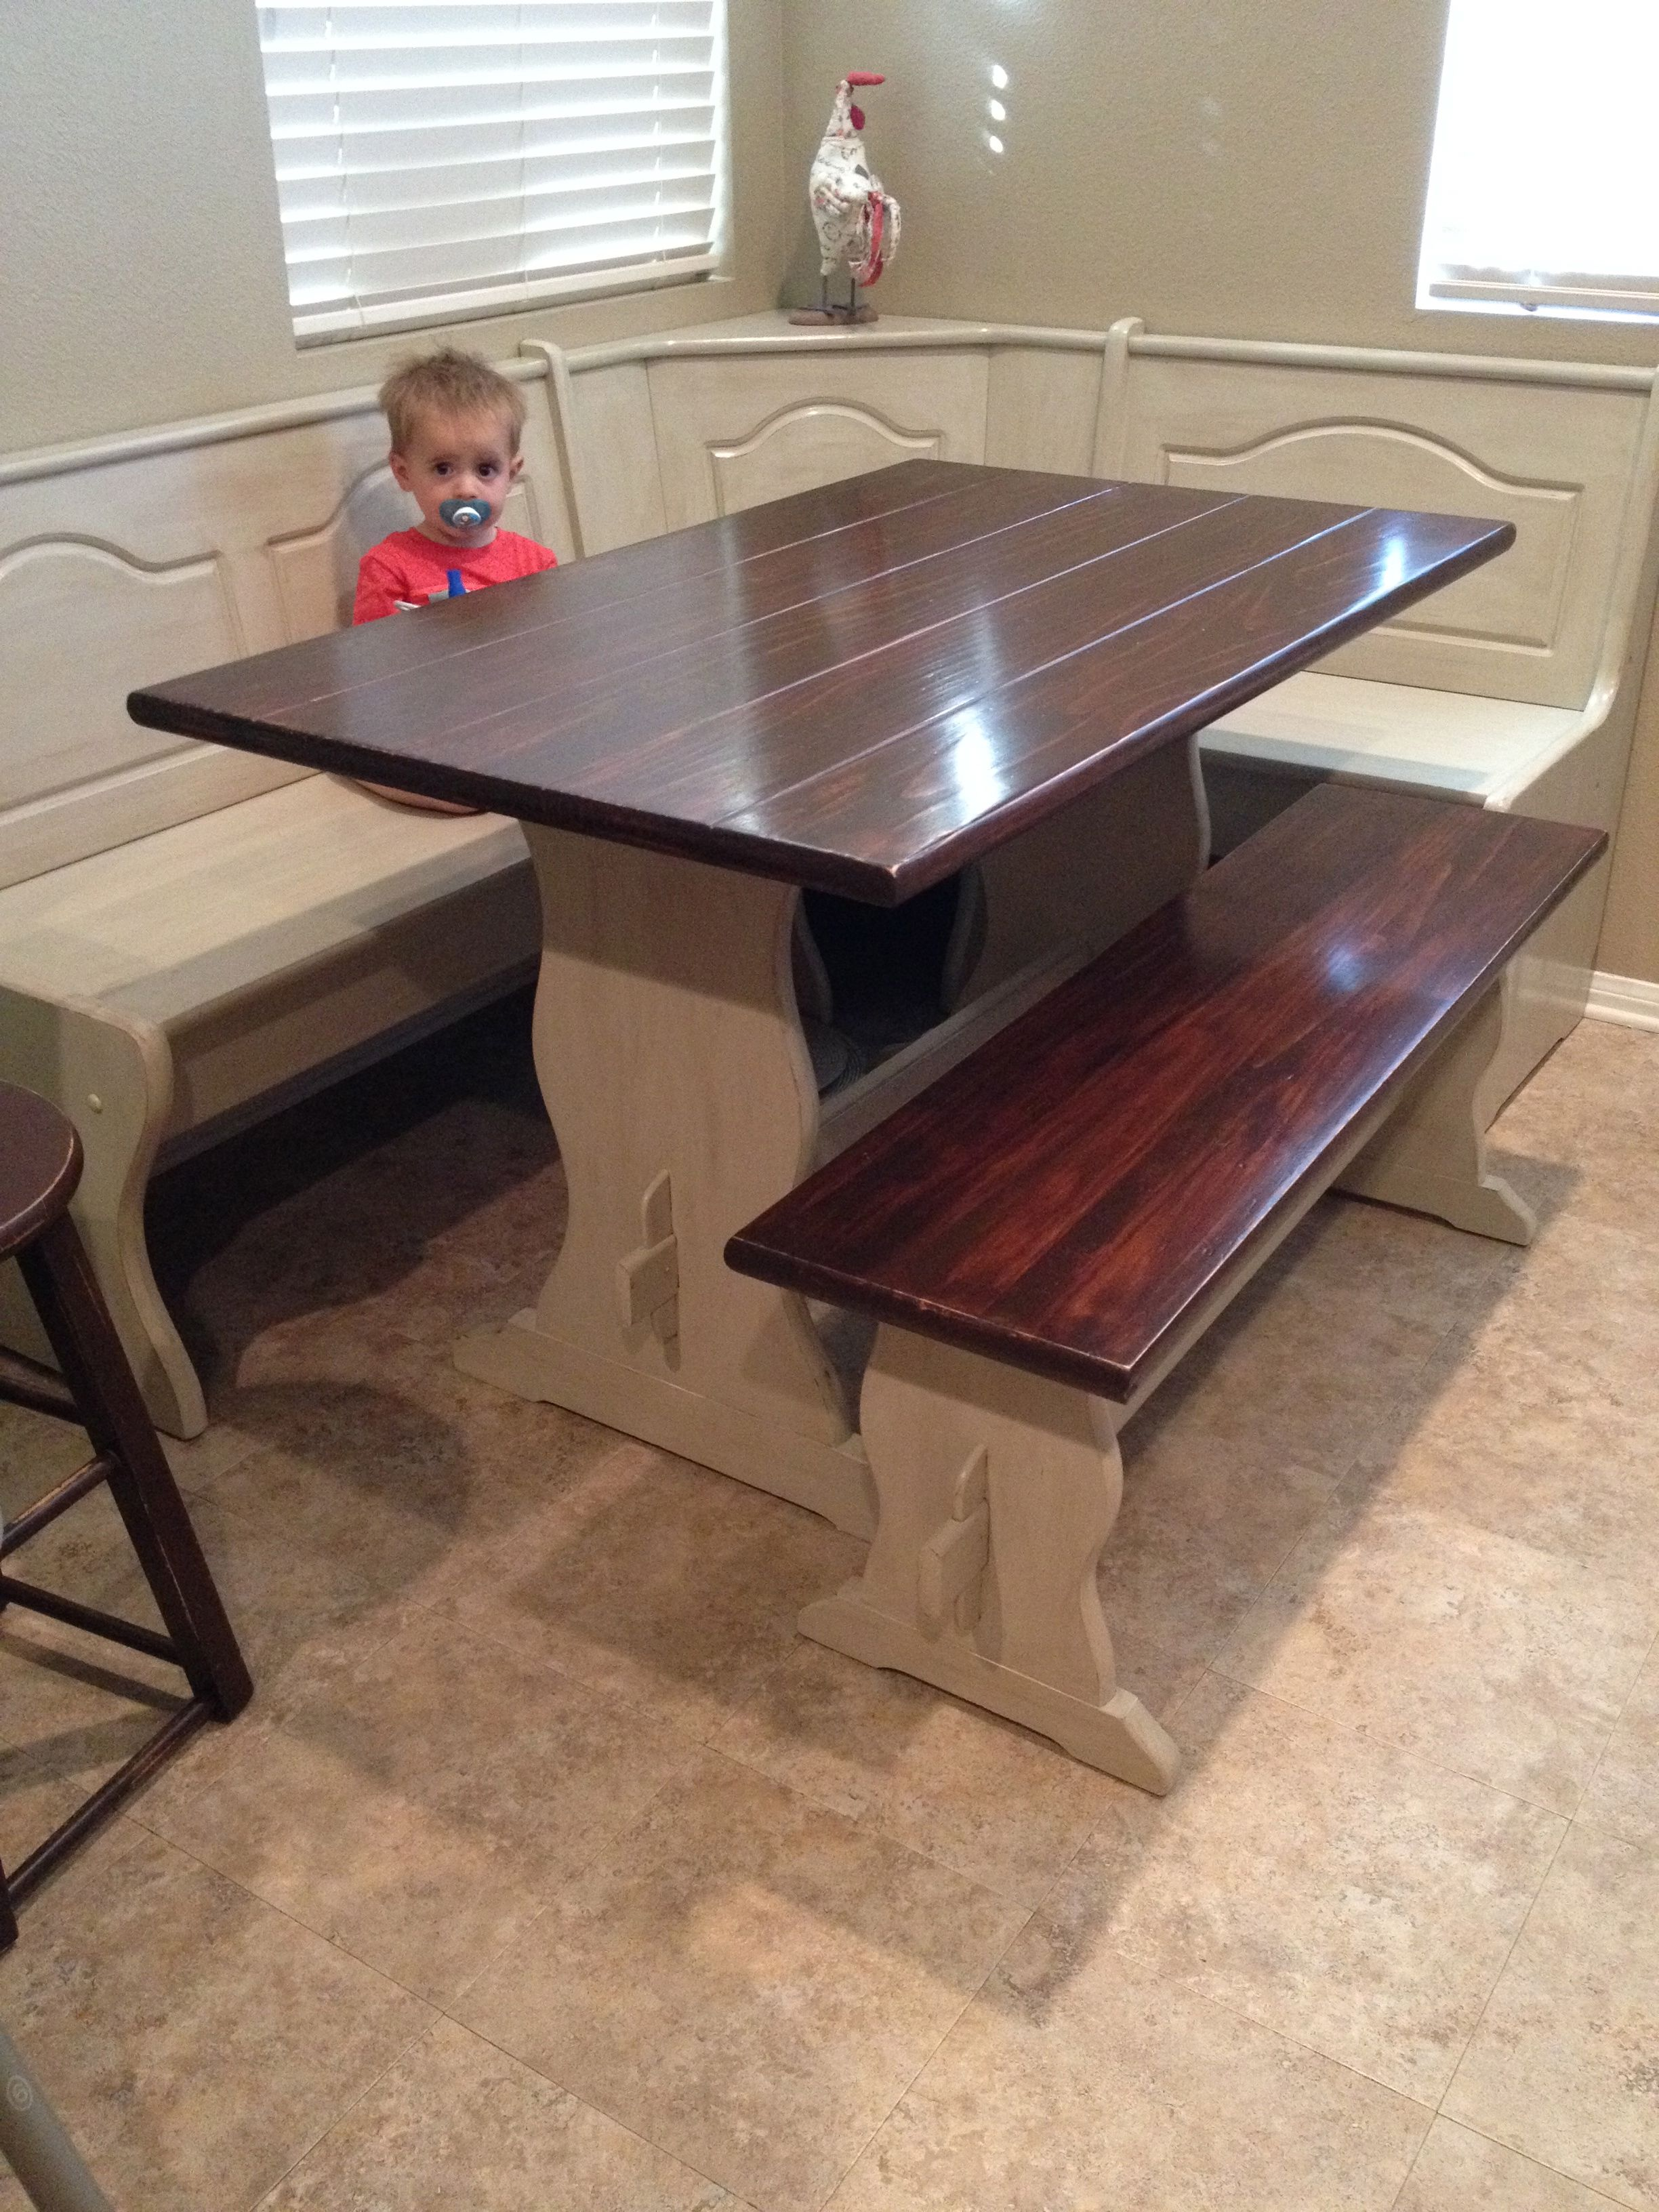 Diy painted stained kitchen table booth banquette nook for Kitchen banquette table